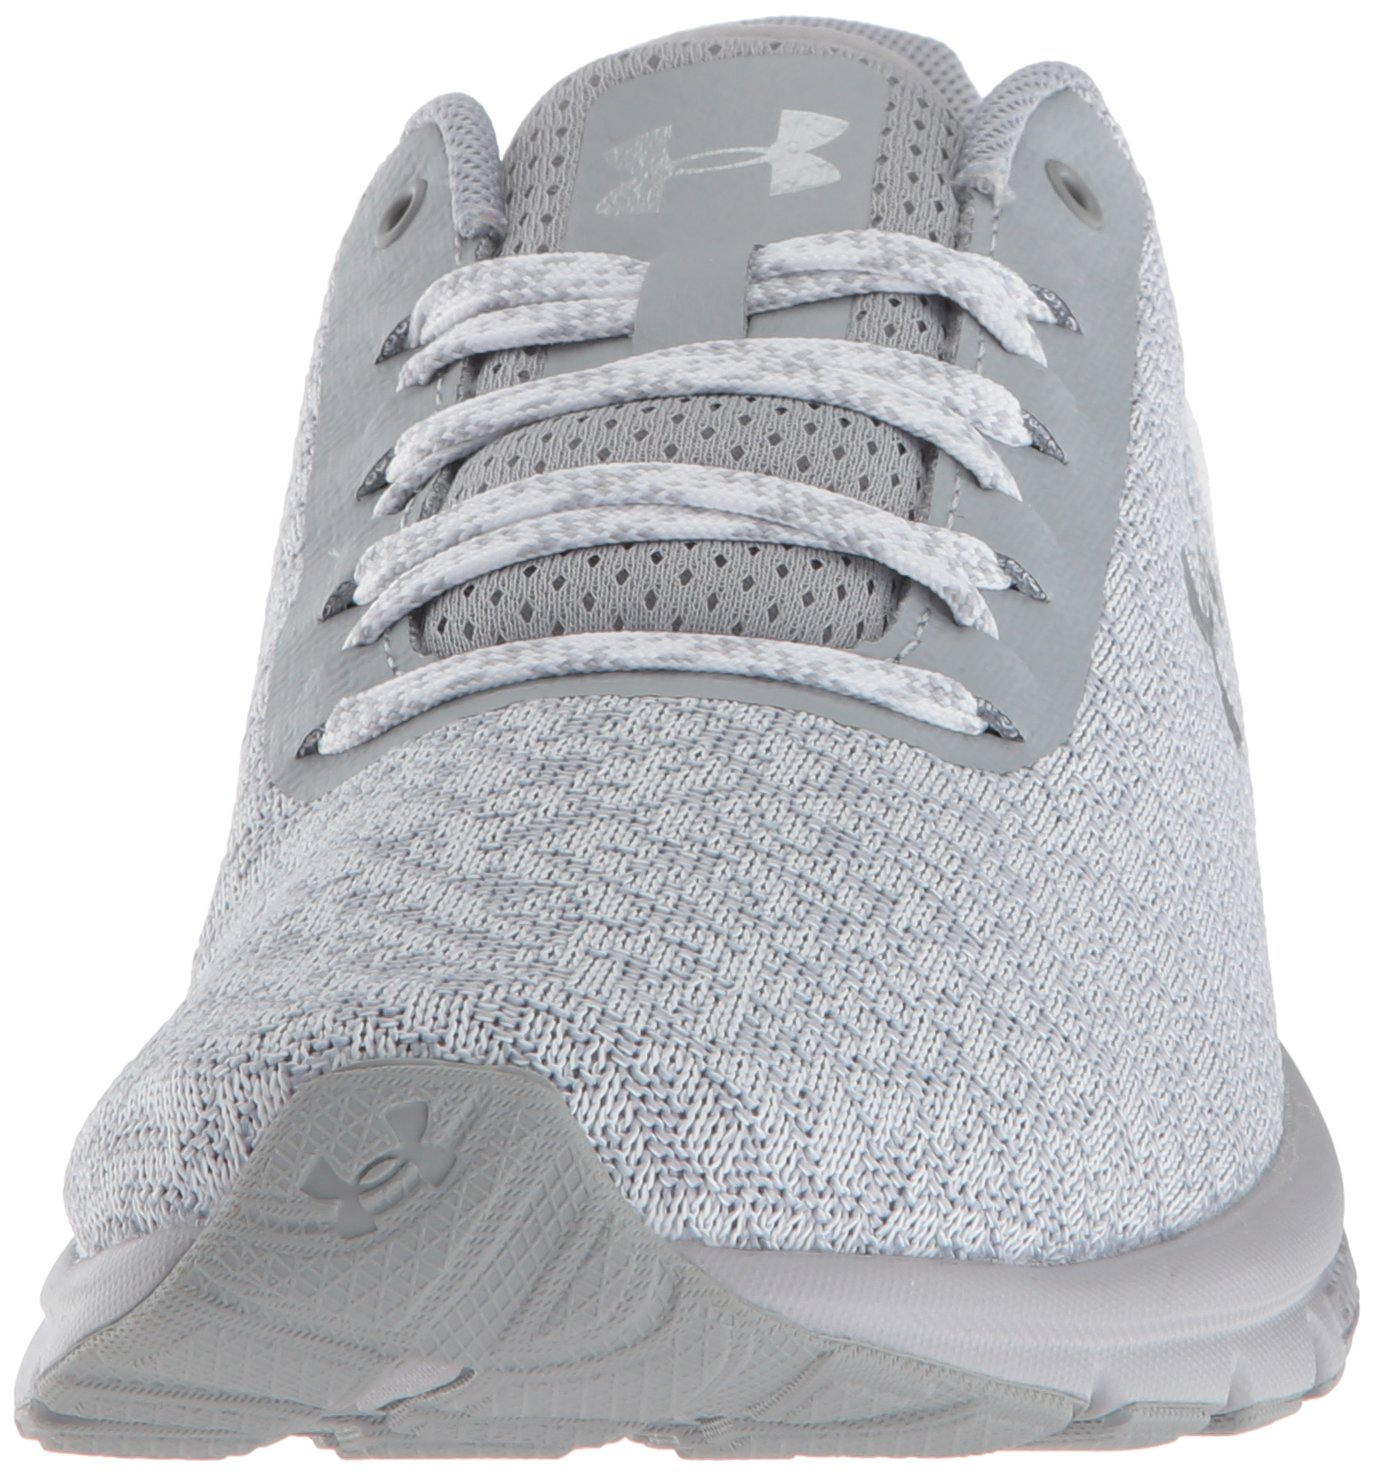 d948d8ab2a83 ... Under Armour Women s Charged Escape 2 M Running Shoe B076S52LTS 10 M 2  US